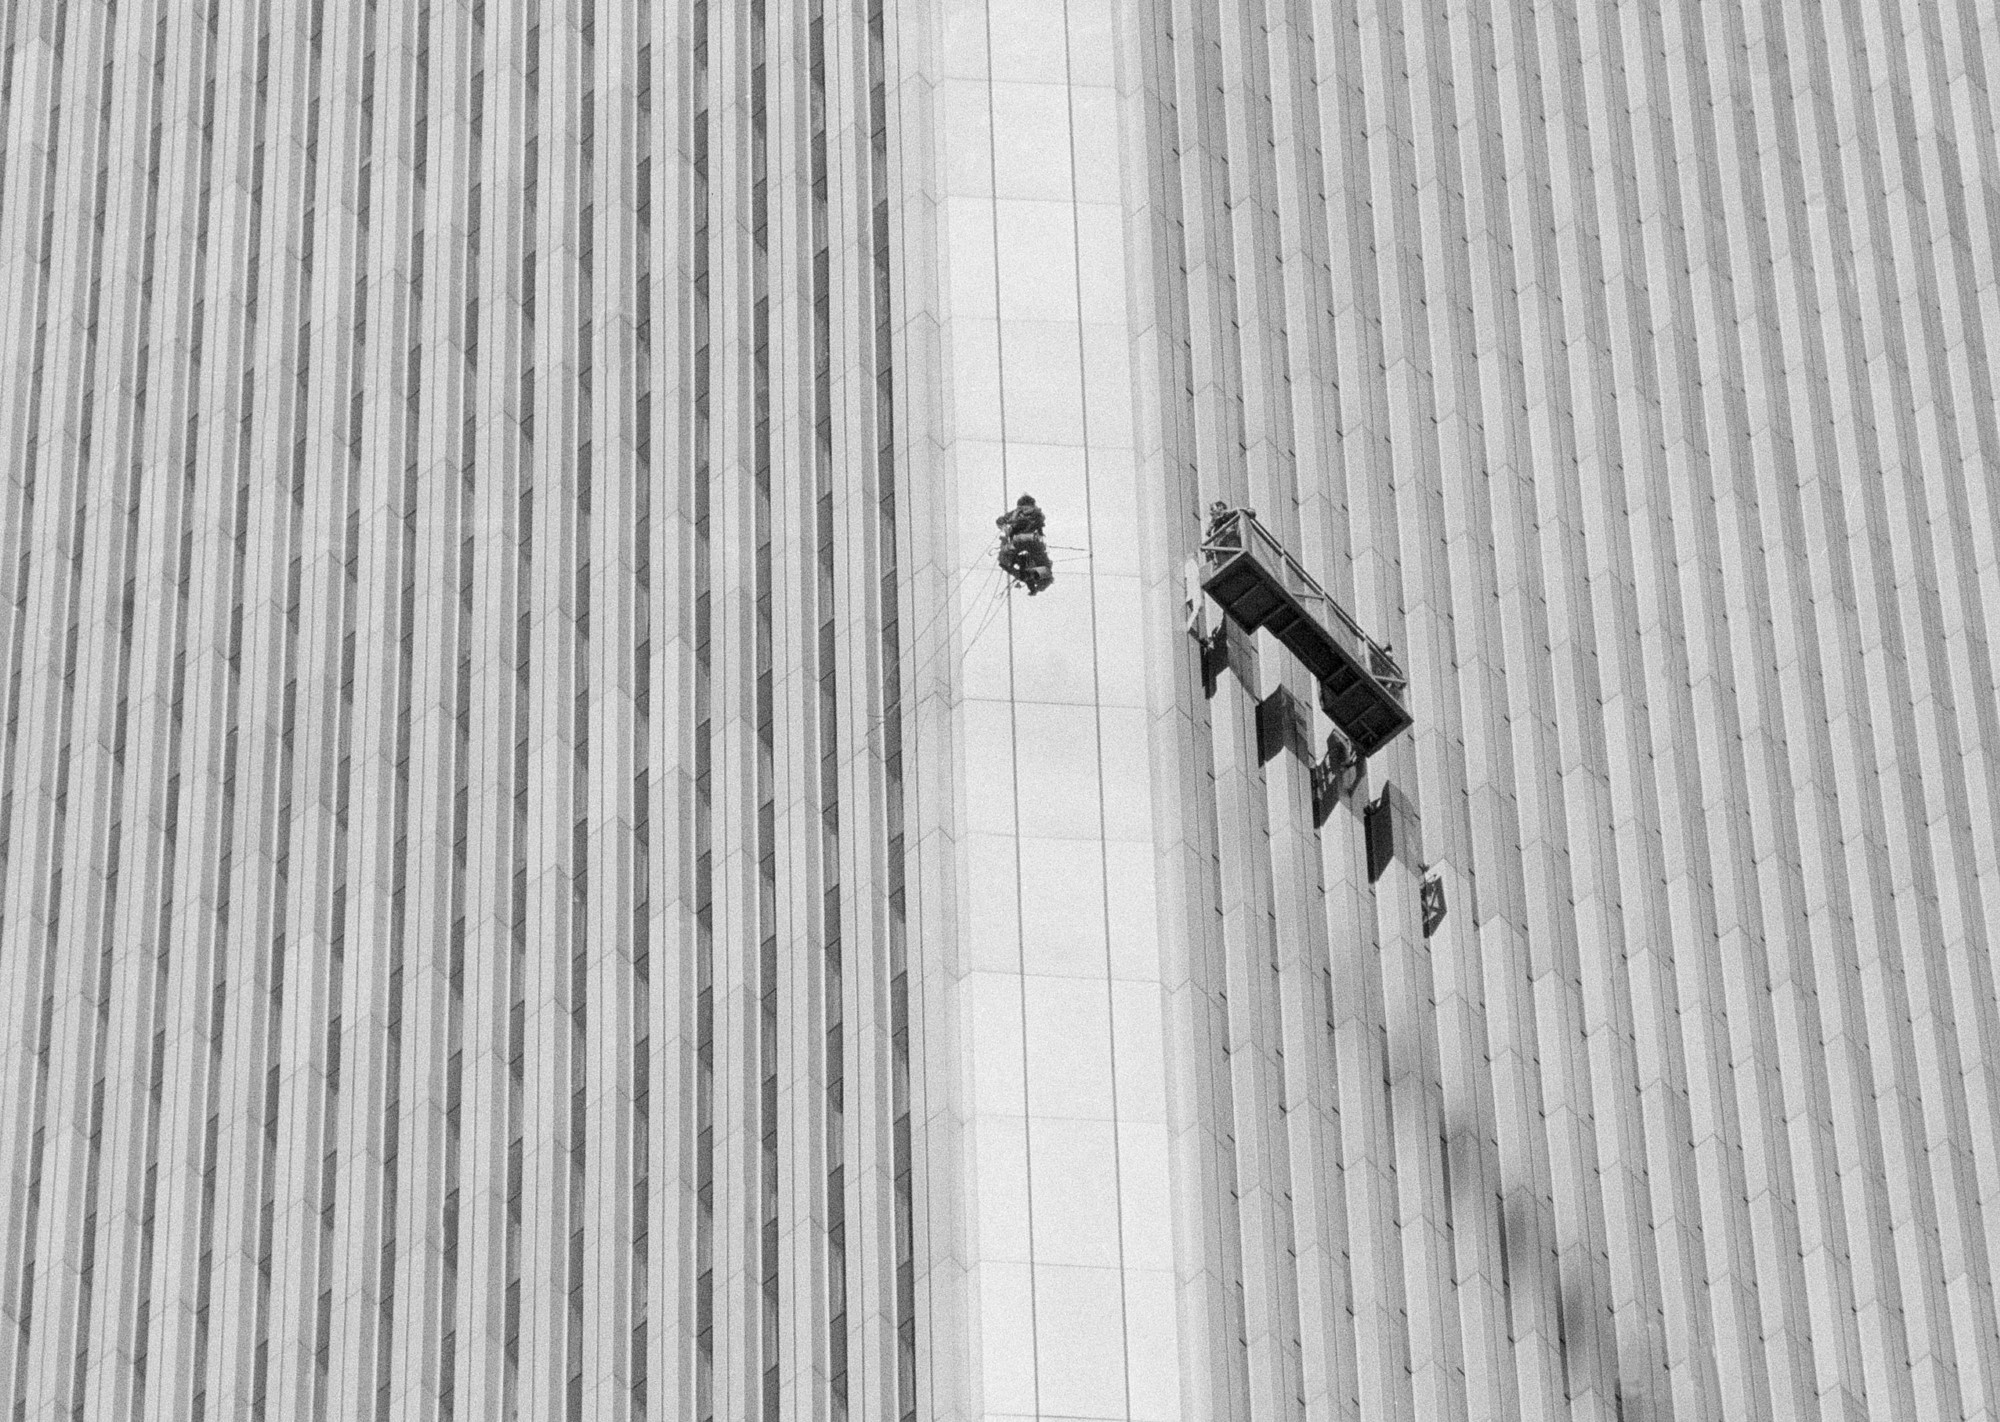 using an invention he fashioned himself george willig heads for the quarter mile high top of new yorks world trade center may 26 1977